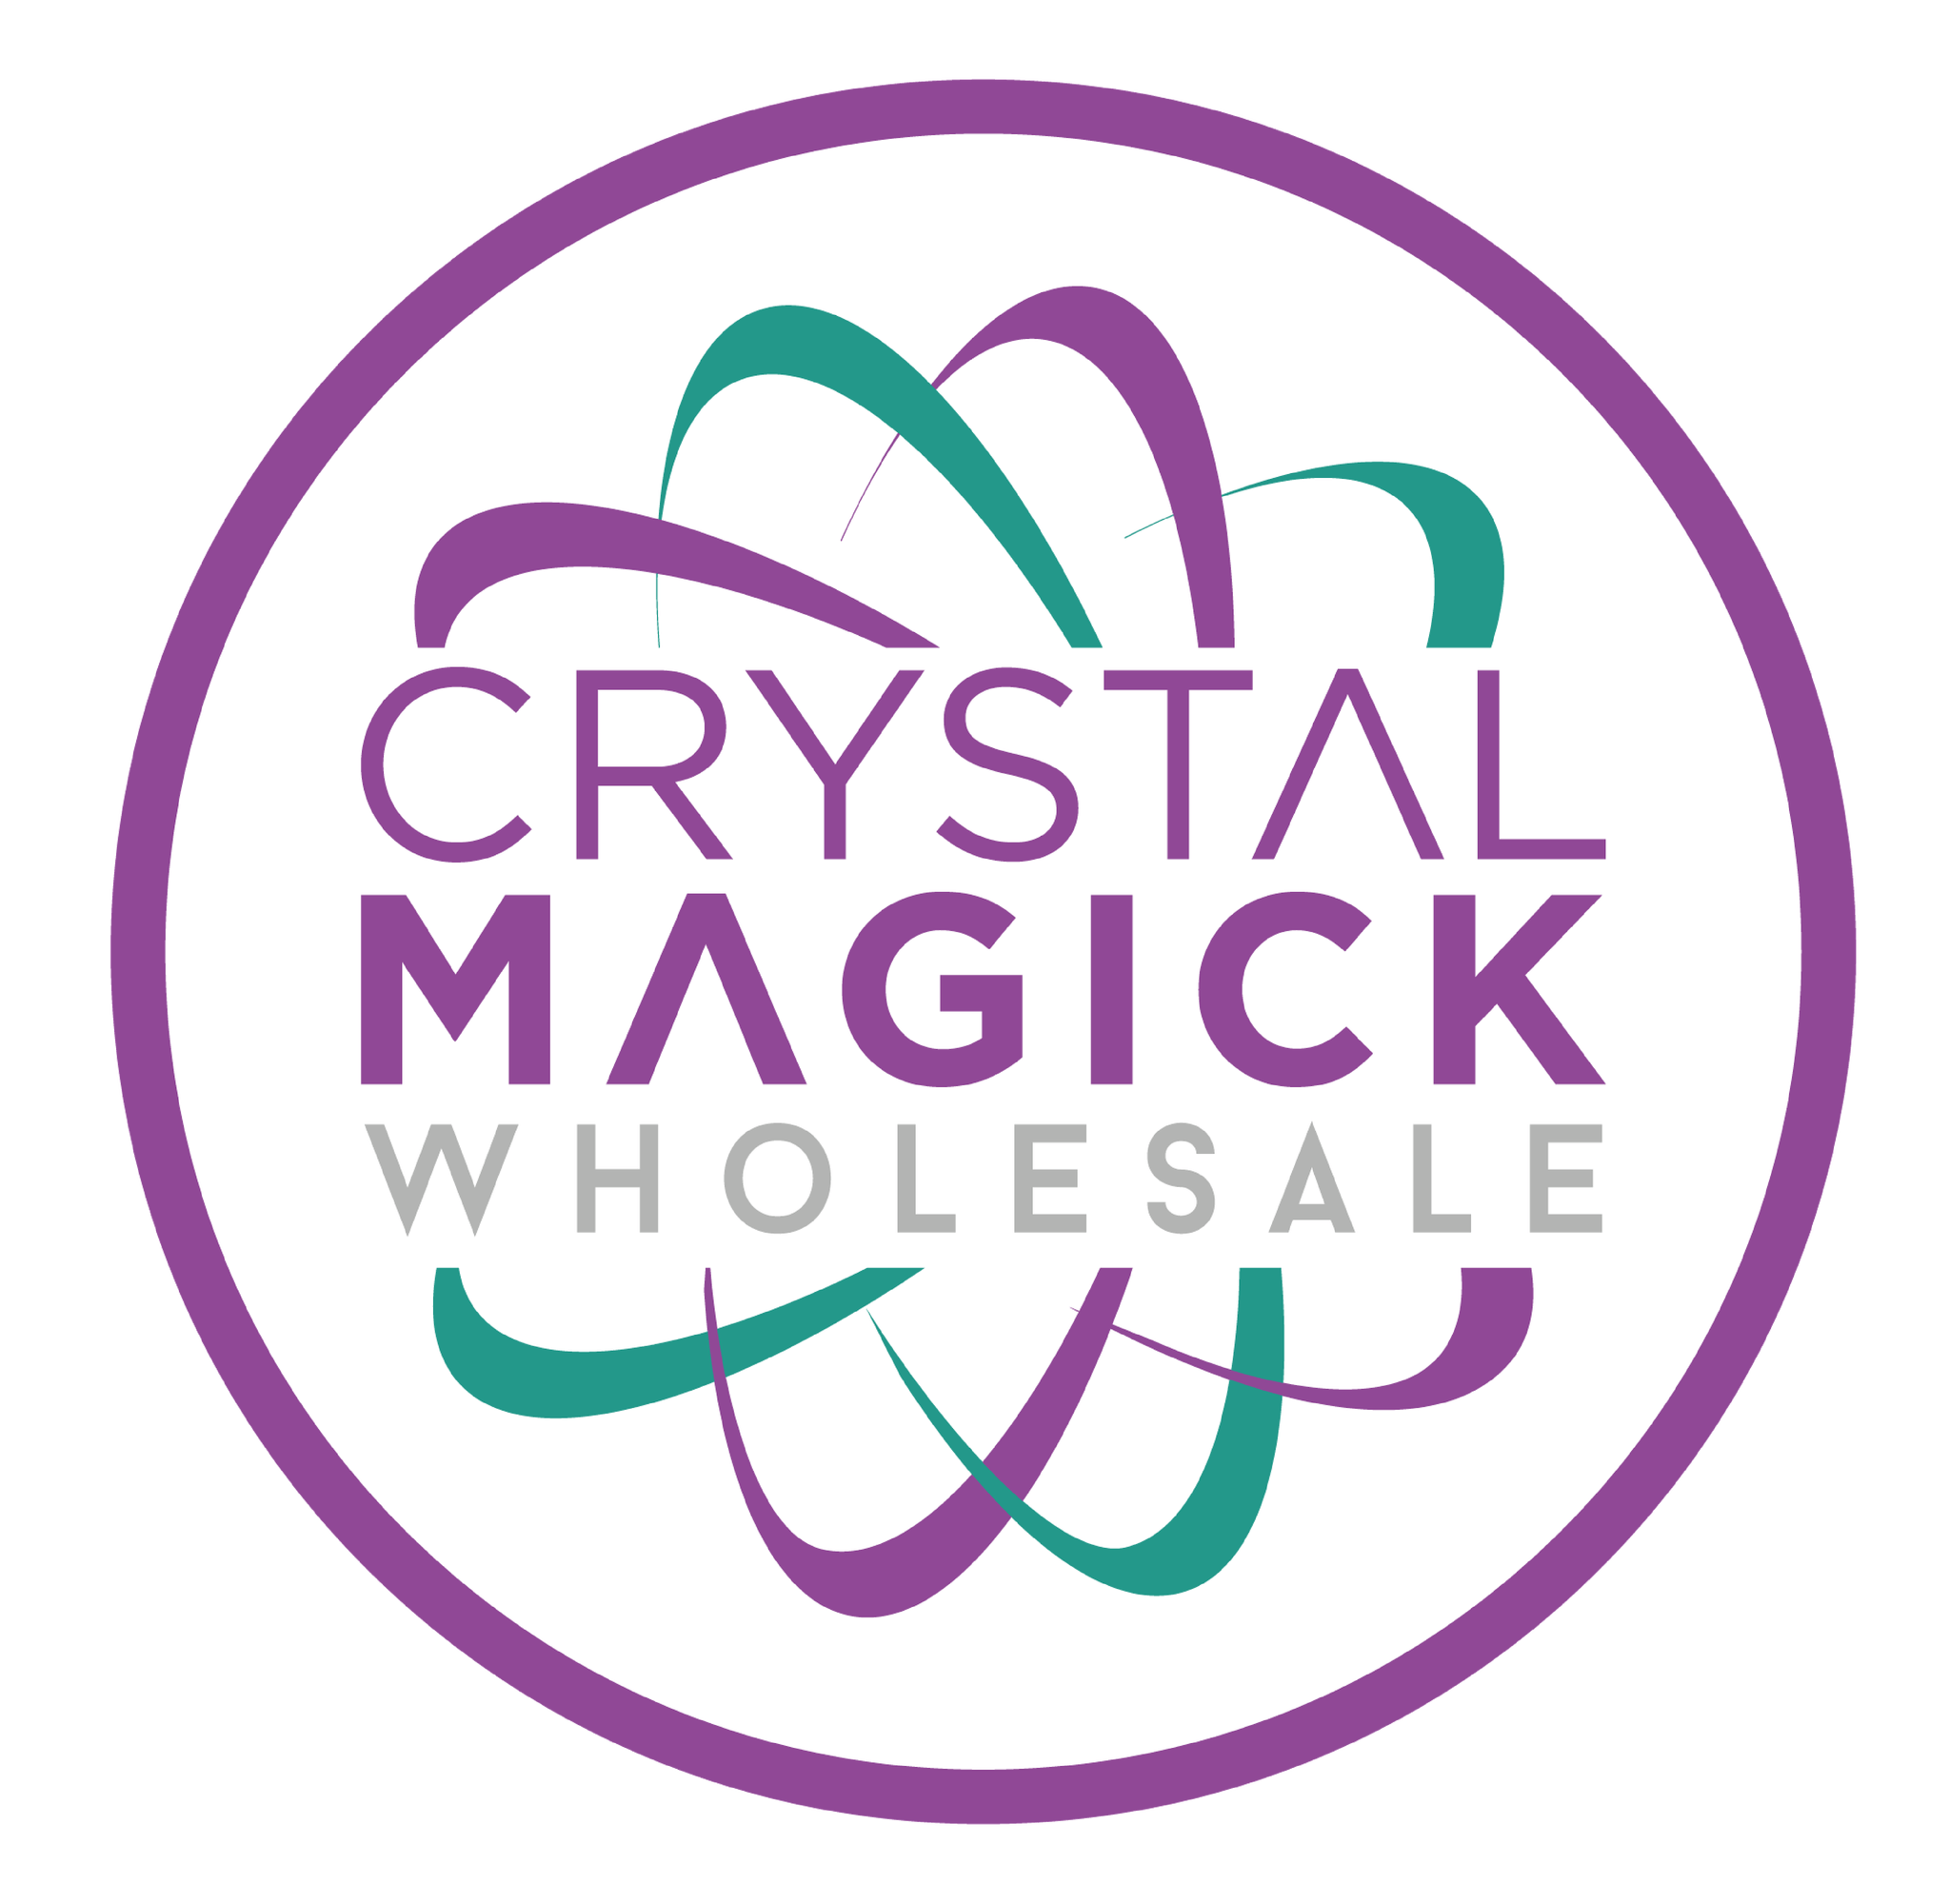 Crystal Magick Wholesale Ltd